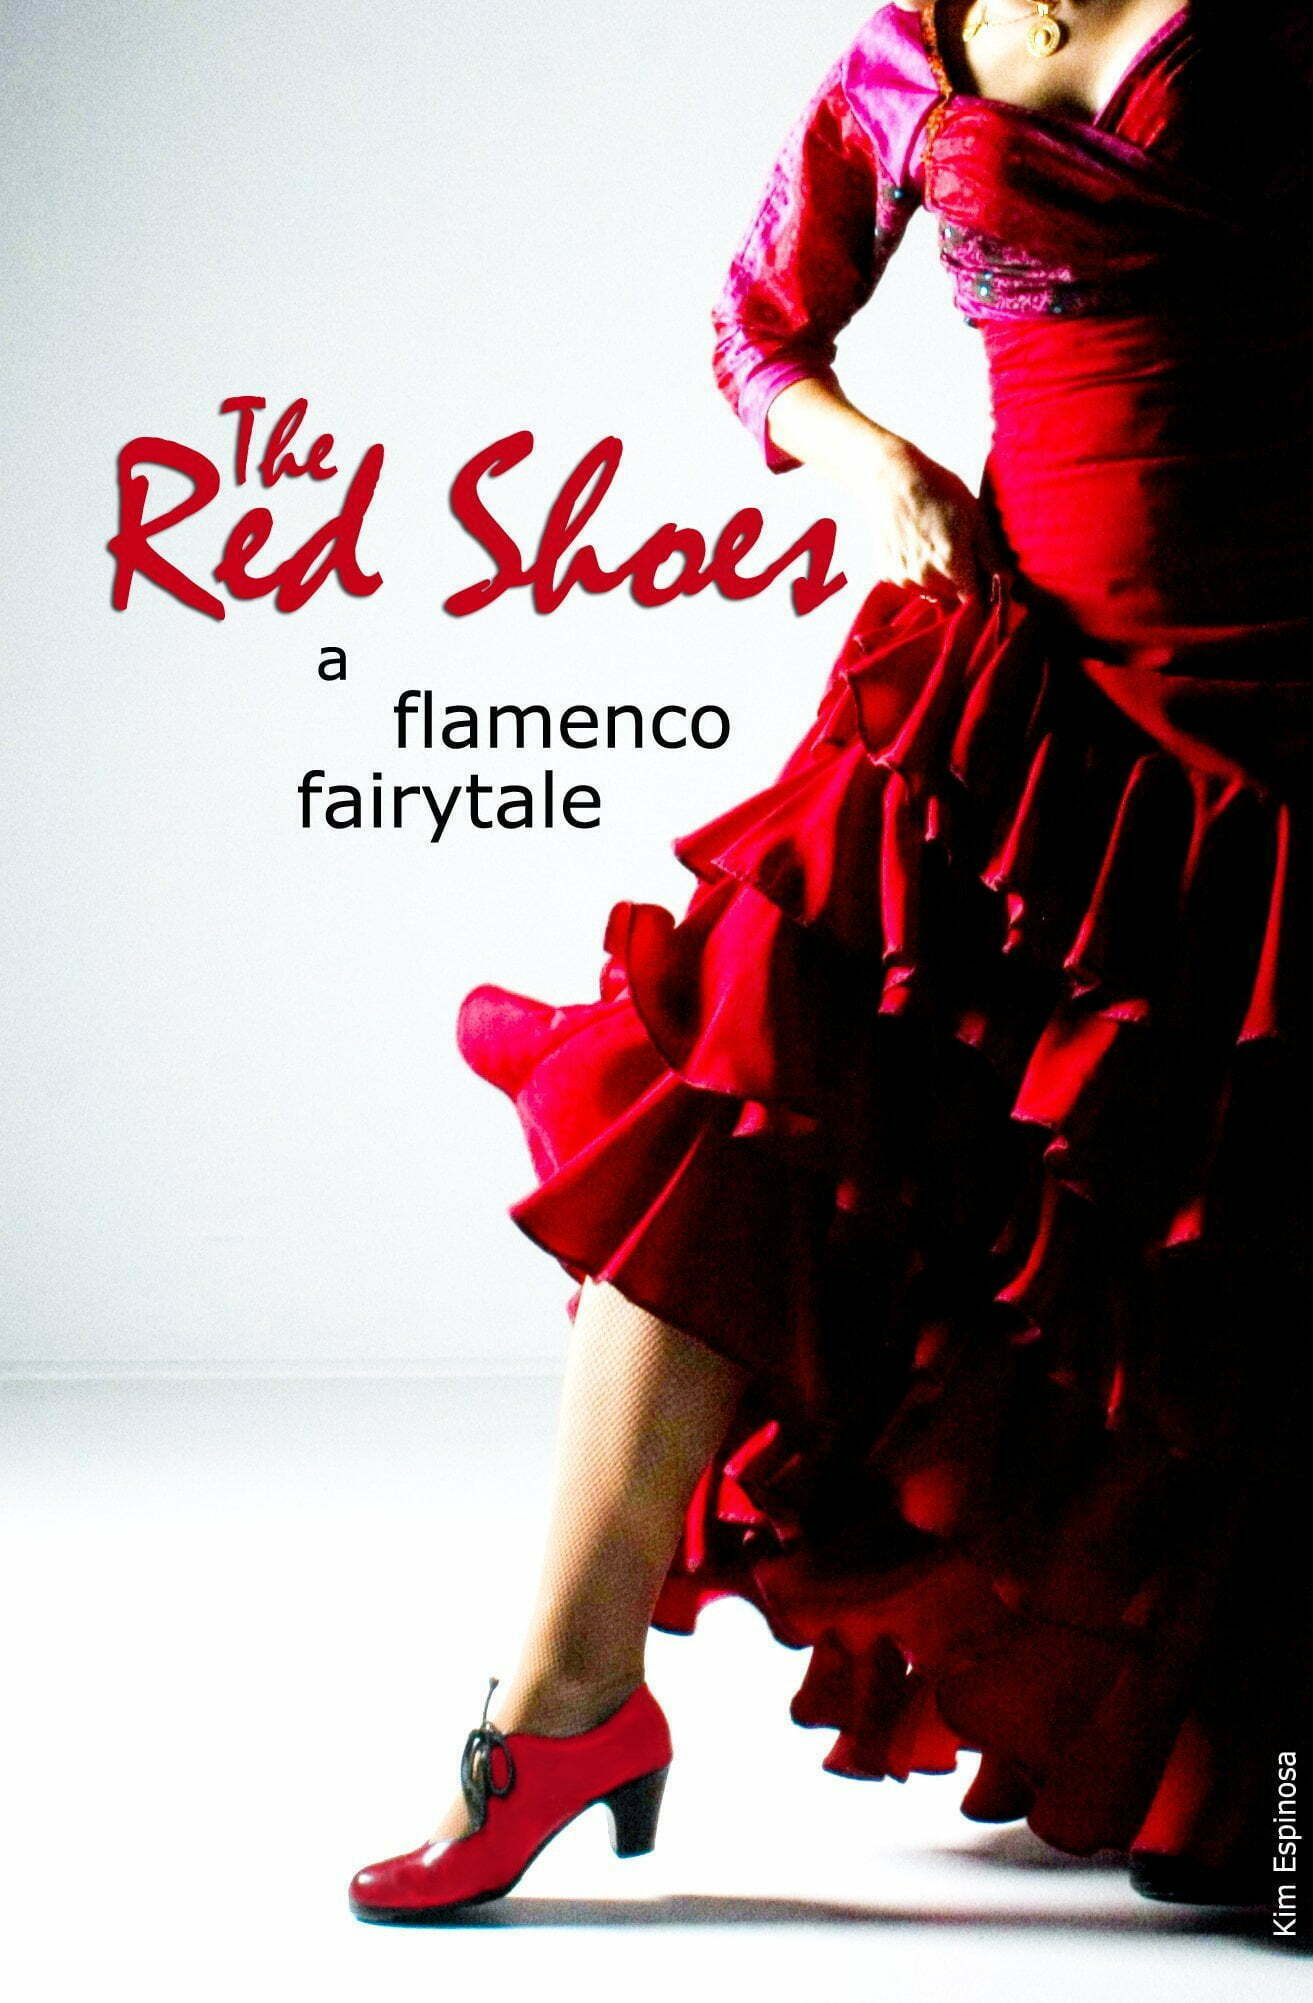 The Red Shoes: A Flamenco Fairytale